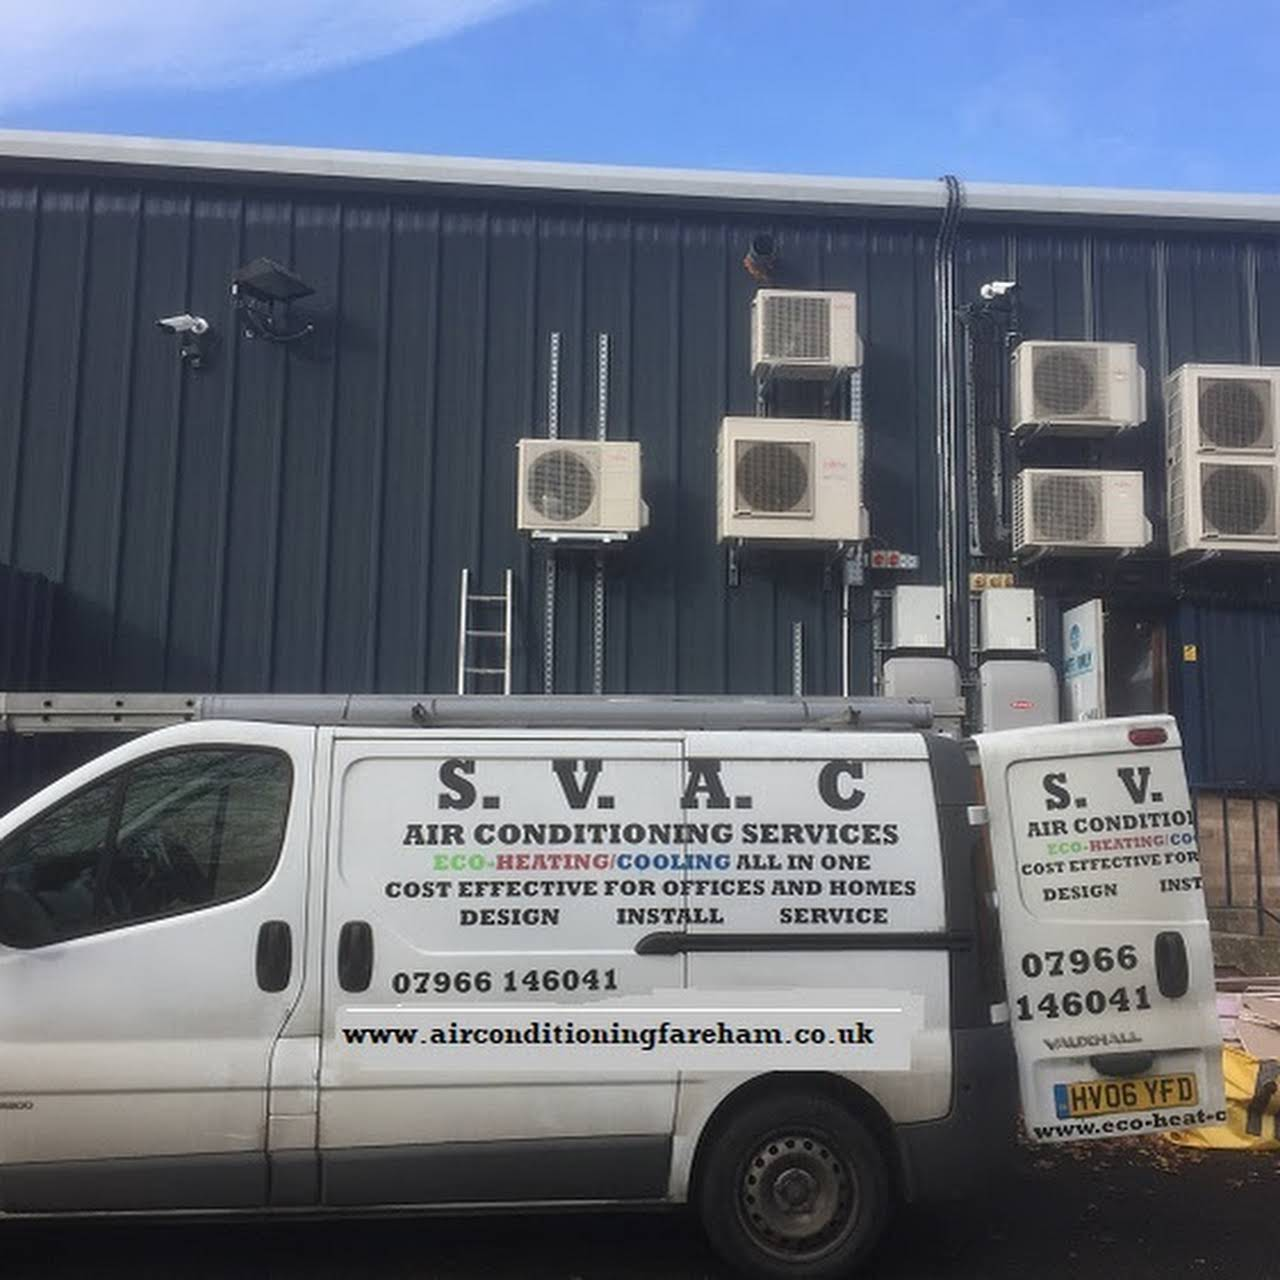 Air Conditioning Services - Air Conditioning Contractor